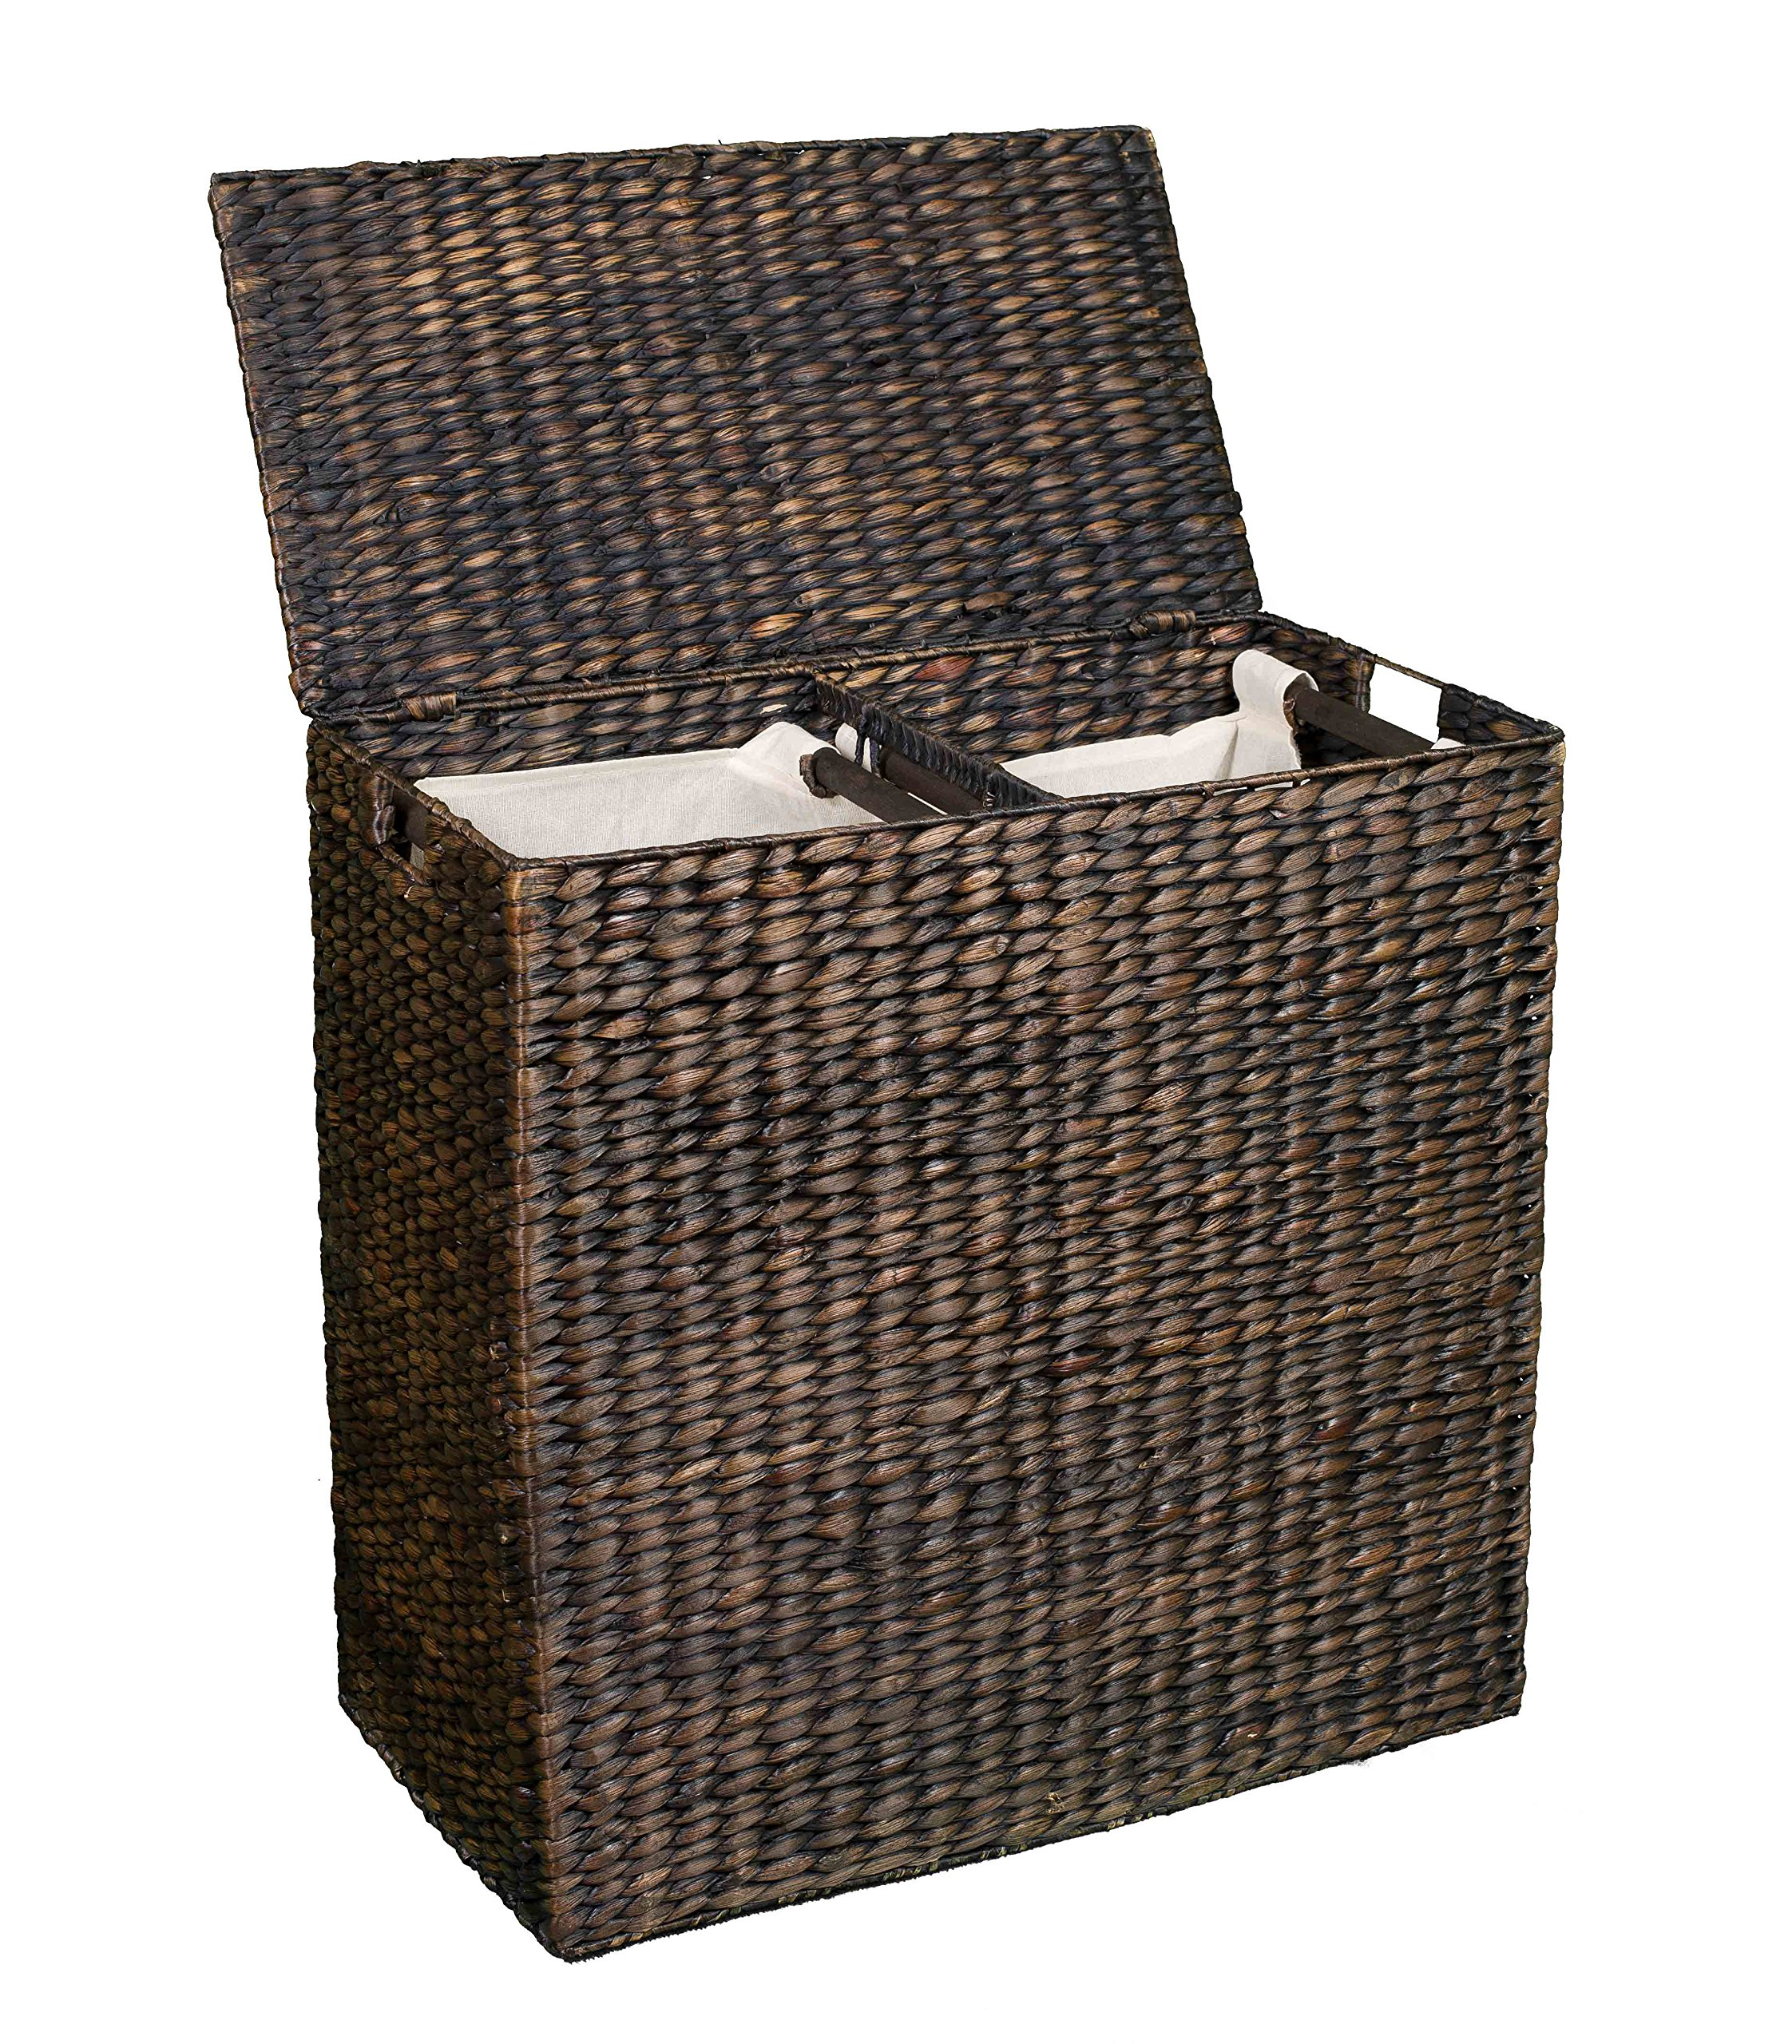 Designer Clothes Hampers Birdrock Home Water Hyacinth Laundry Hamper With Divided